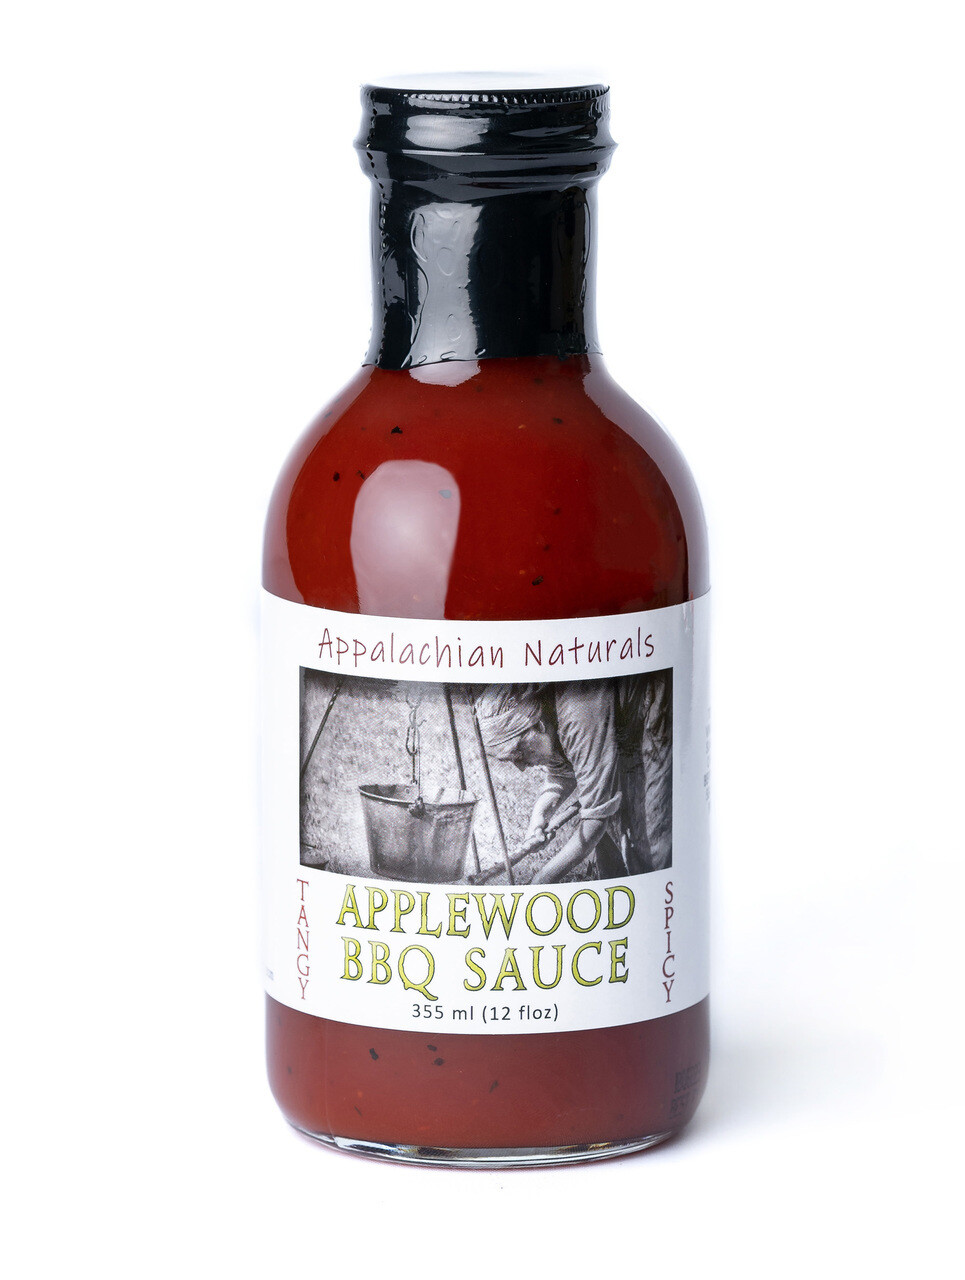 Appalachian Naturals Applewood Smoked Spicy BBQ Sauce